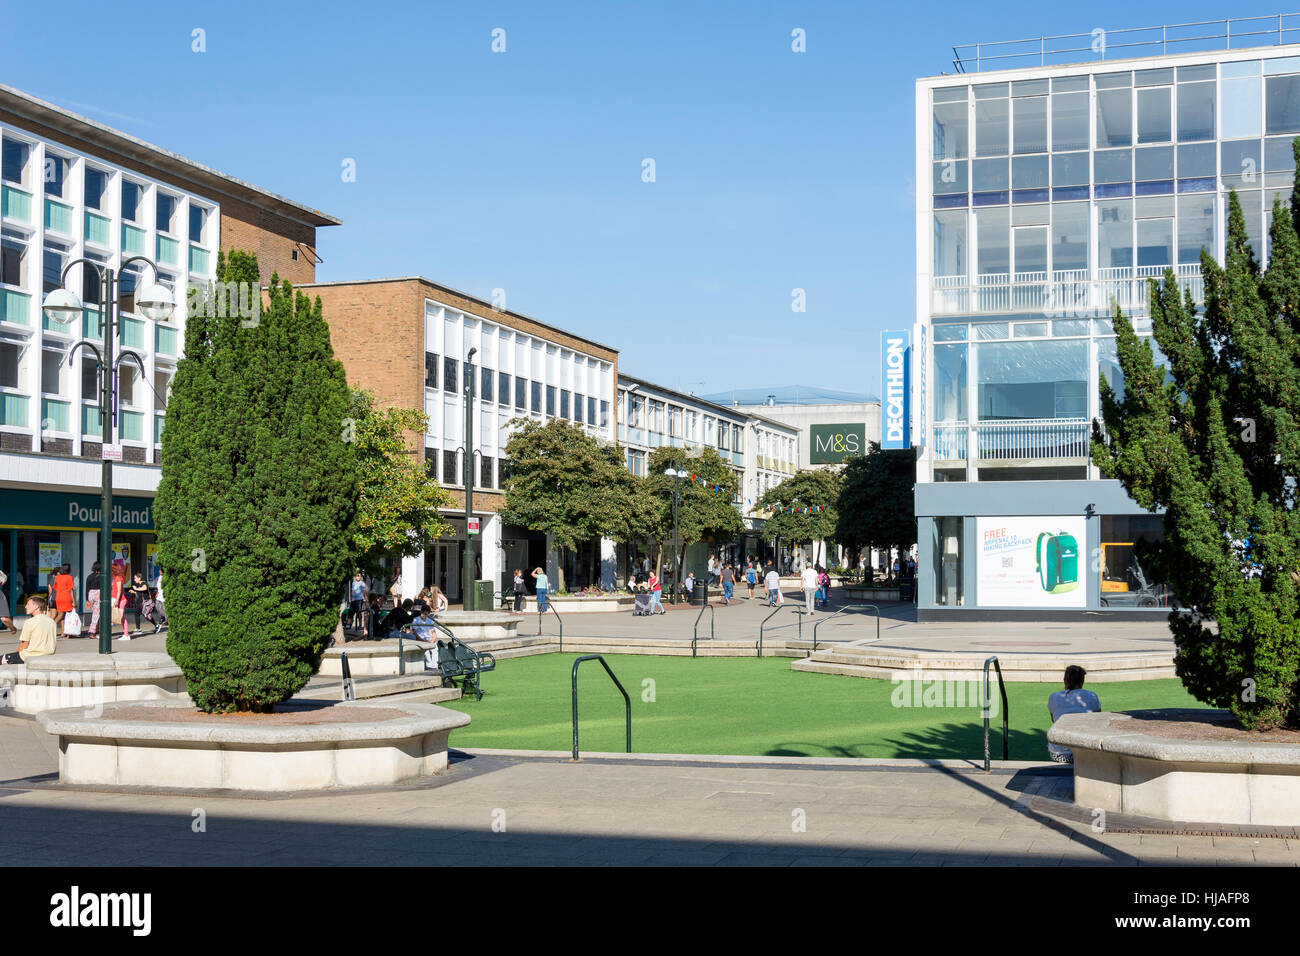 Queens Square, Crawley, West Sussex, England, United Kingdom - Stock Image